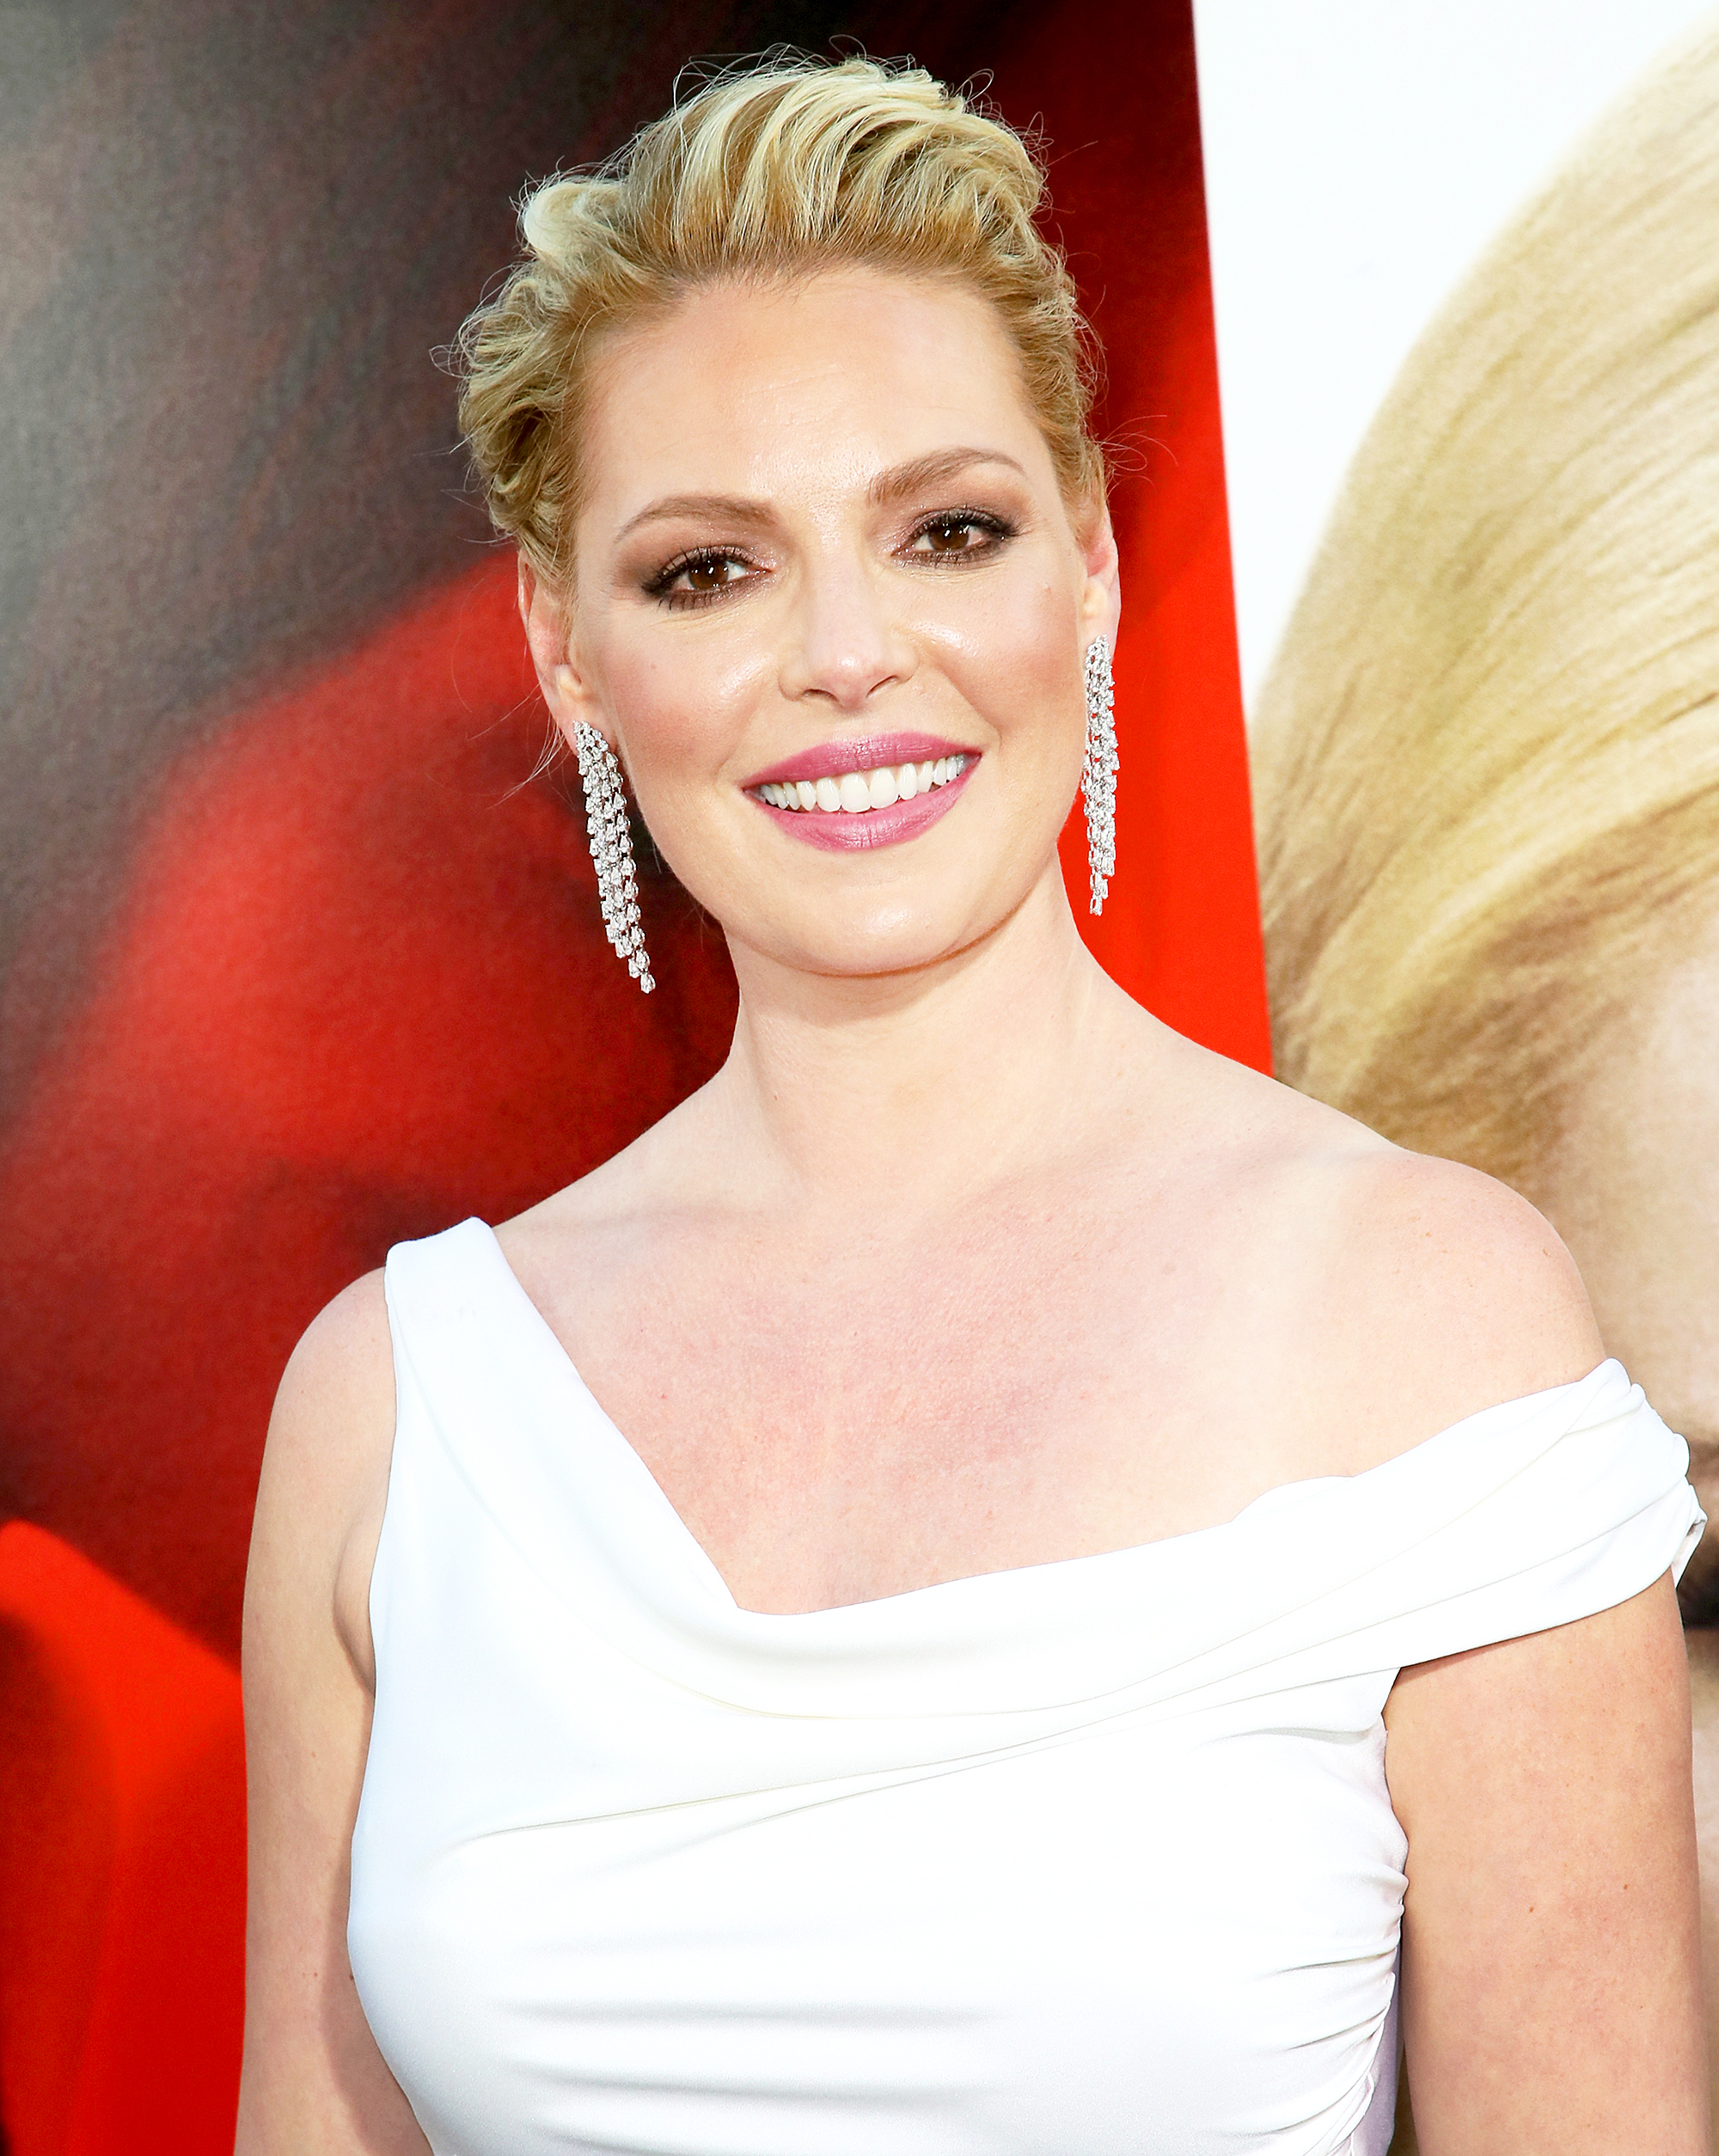 Katherine Heigl Poses in Bikini, Reveals How She Lost Post-Baby Weight